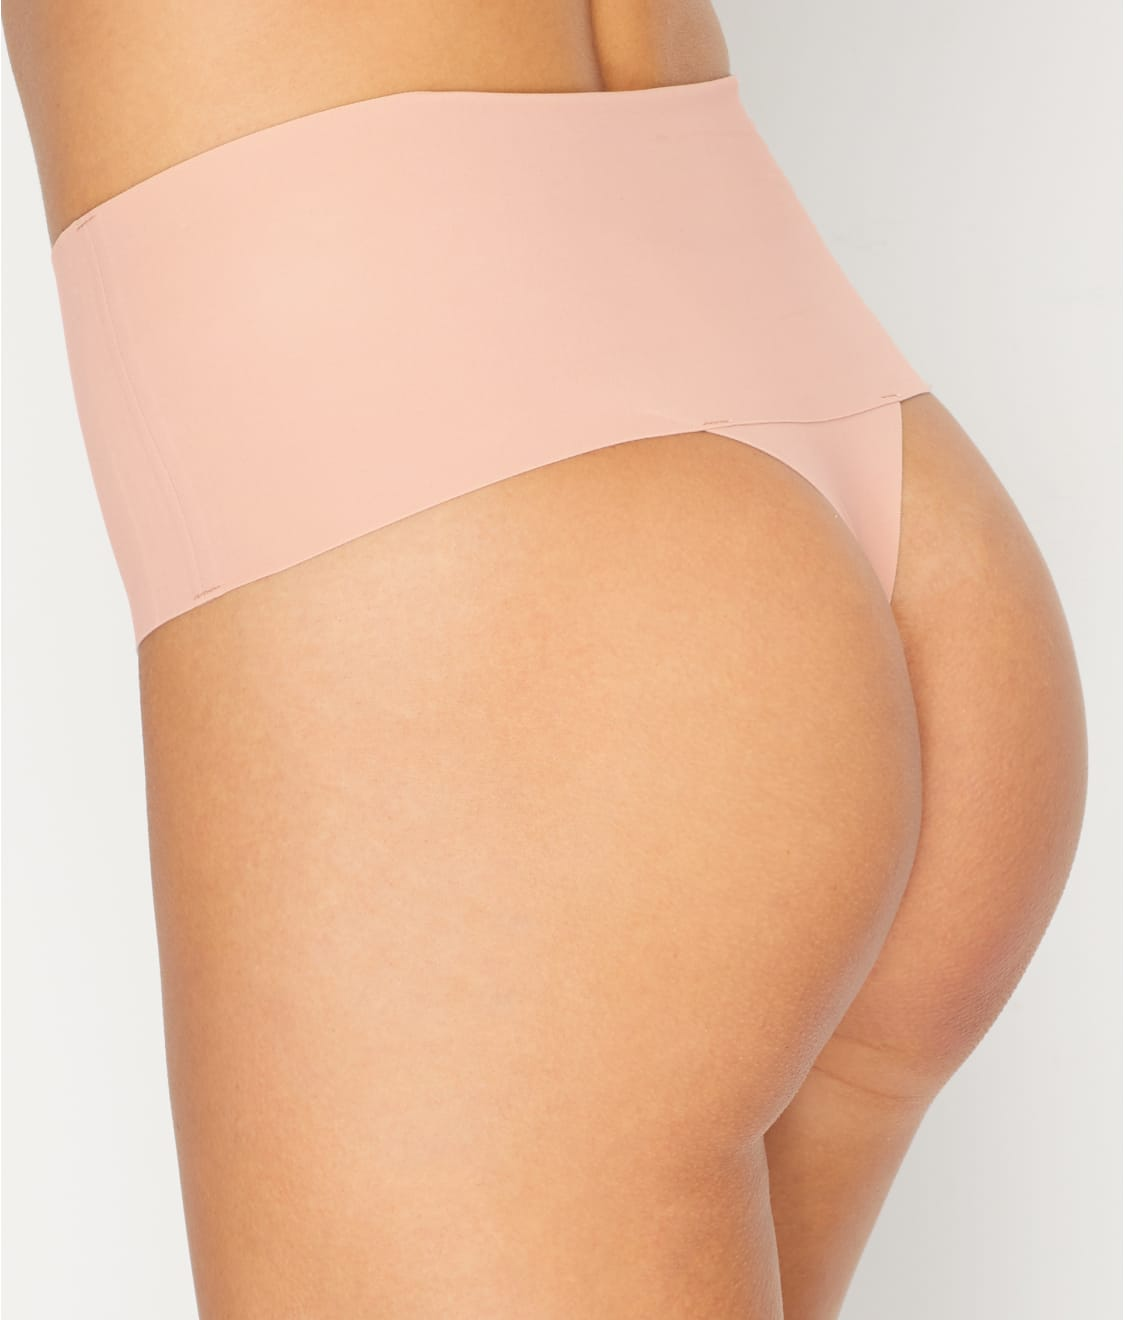 bf6d32443b0f SPANX Undie-tectable Thong   Bare Necessities (SP0115)